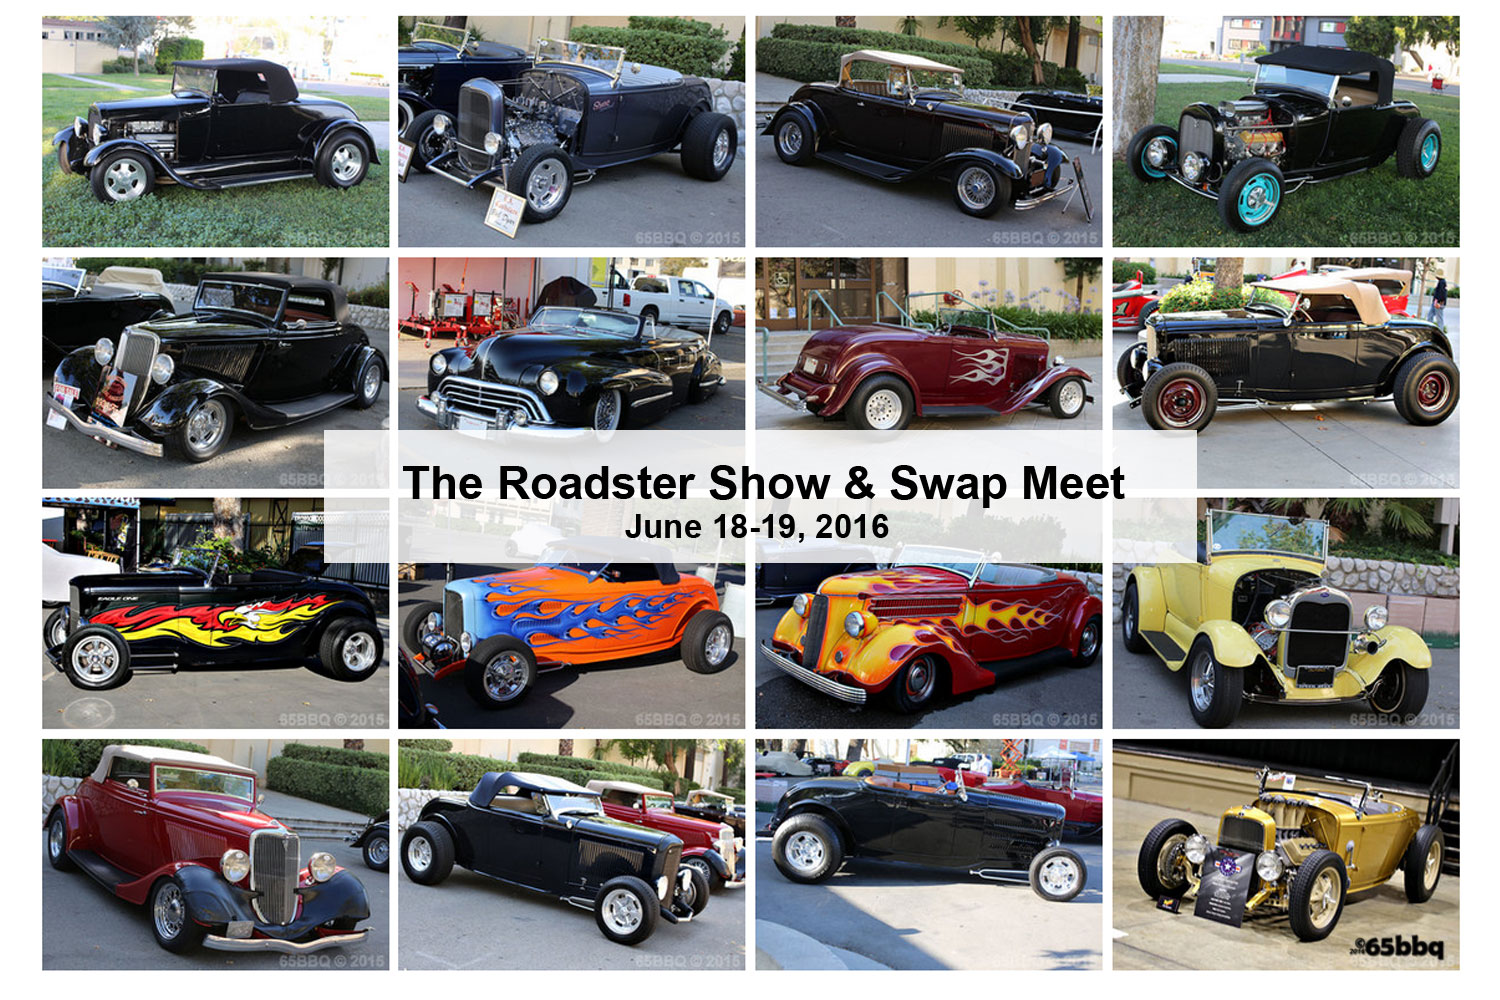 The Roadster Show 65bbq